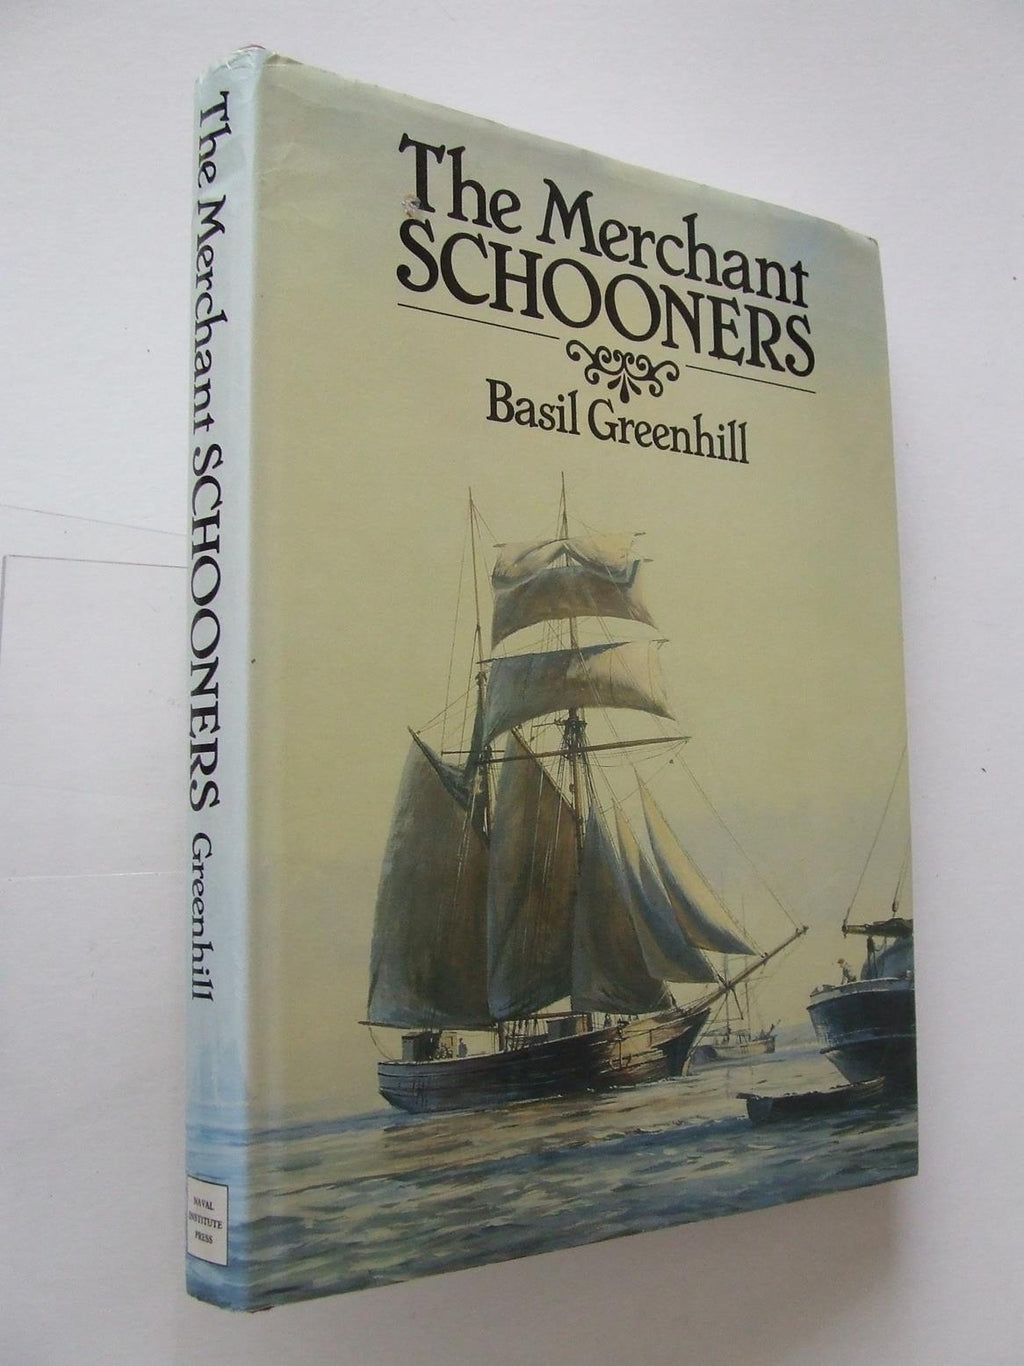 The Merchant Schooners